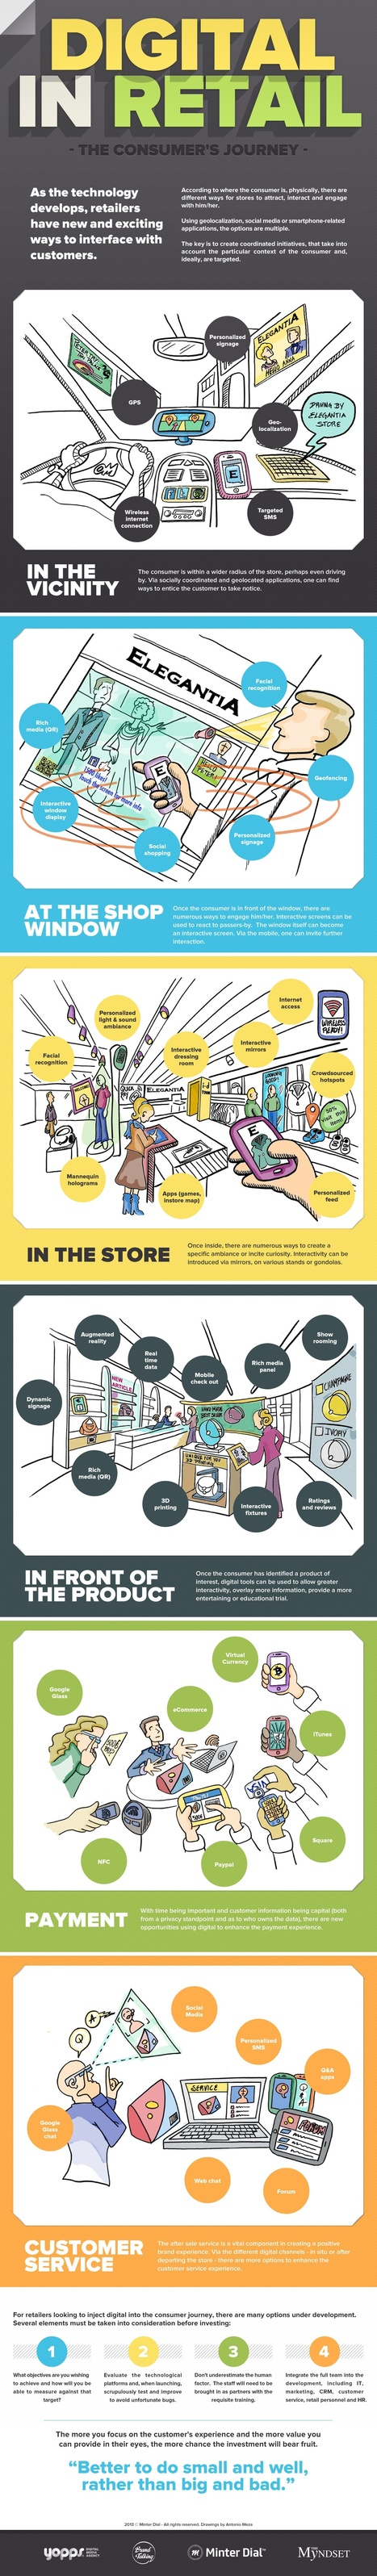 How to Use Digital in Retail [INFOGRAPHIC] | MarketingHits | Scoop.it